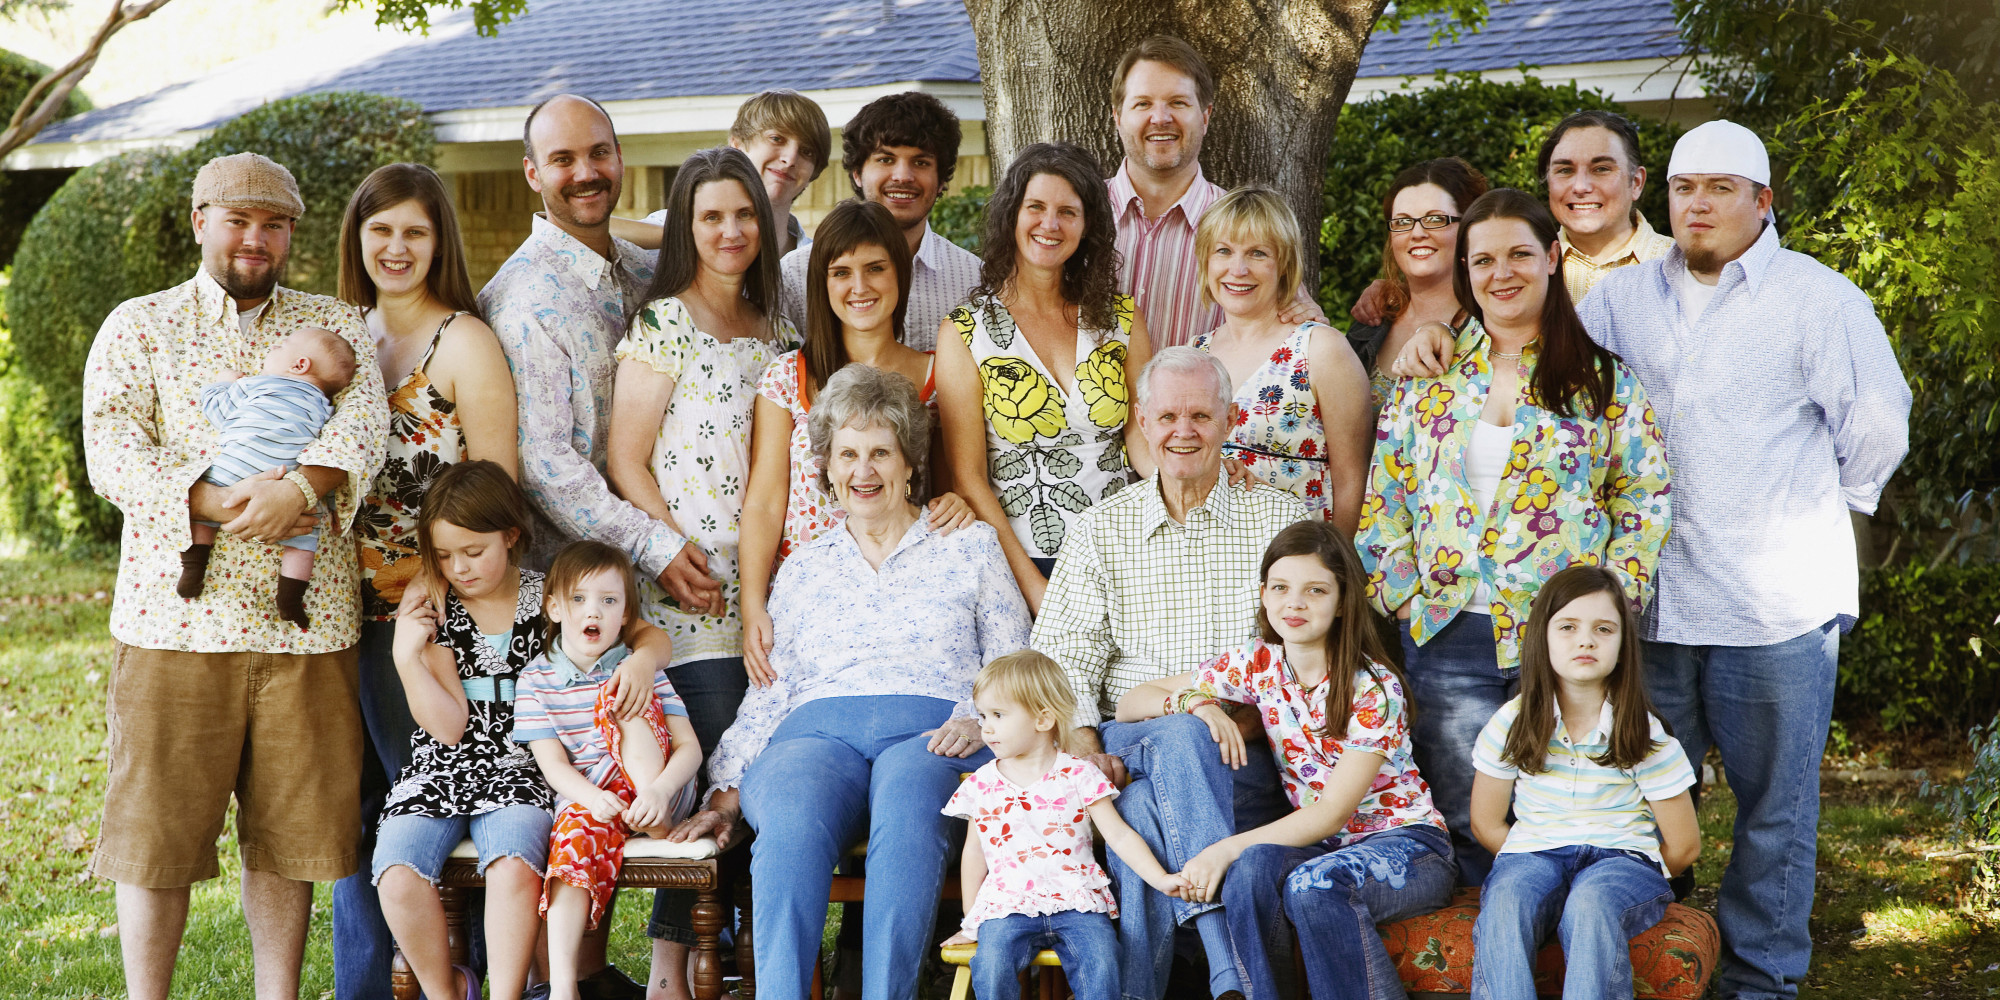 Tens Truths Of Having A Big Family